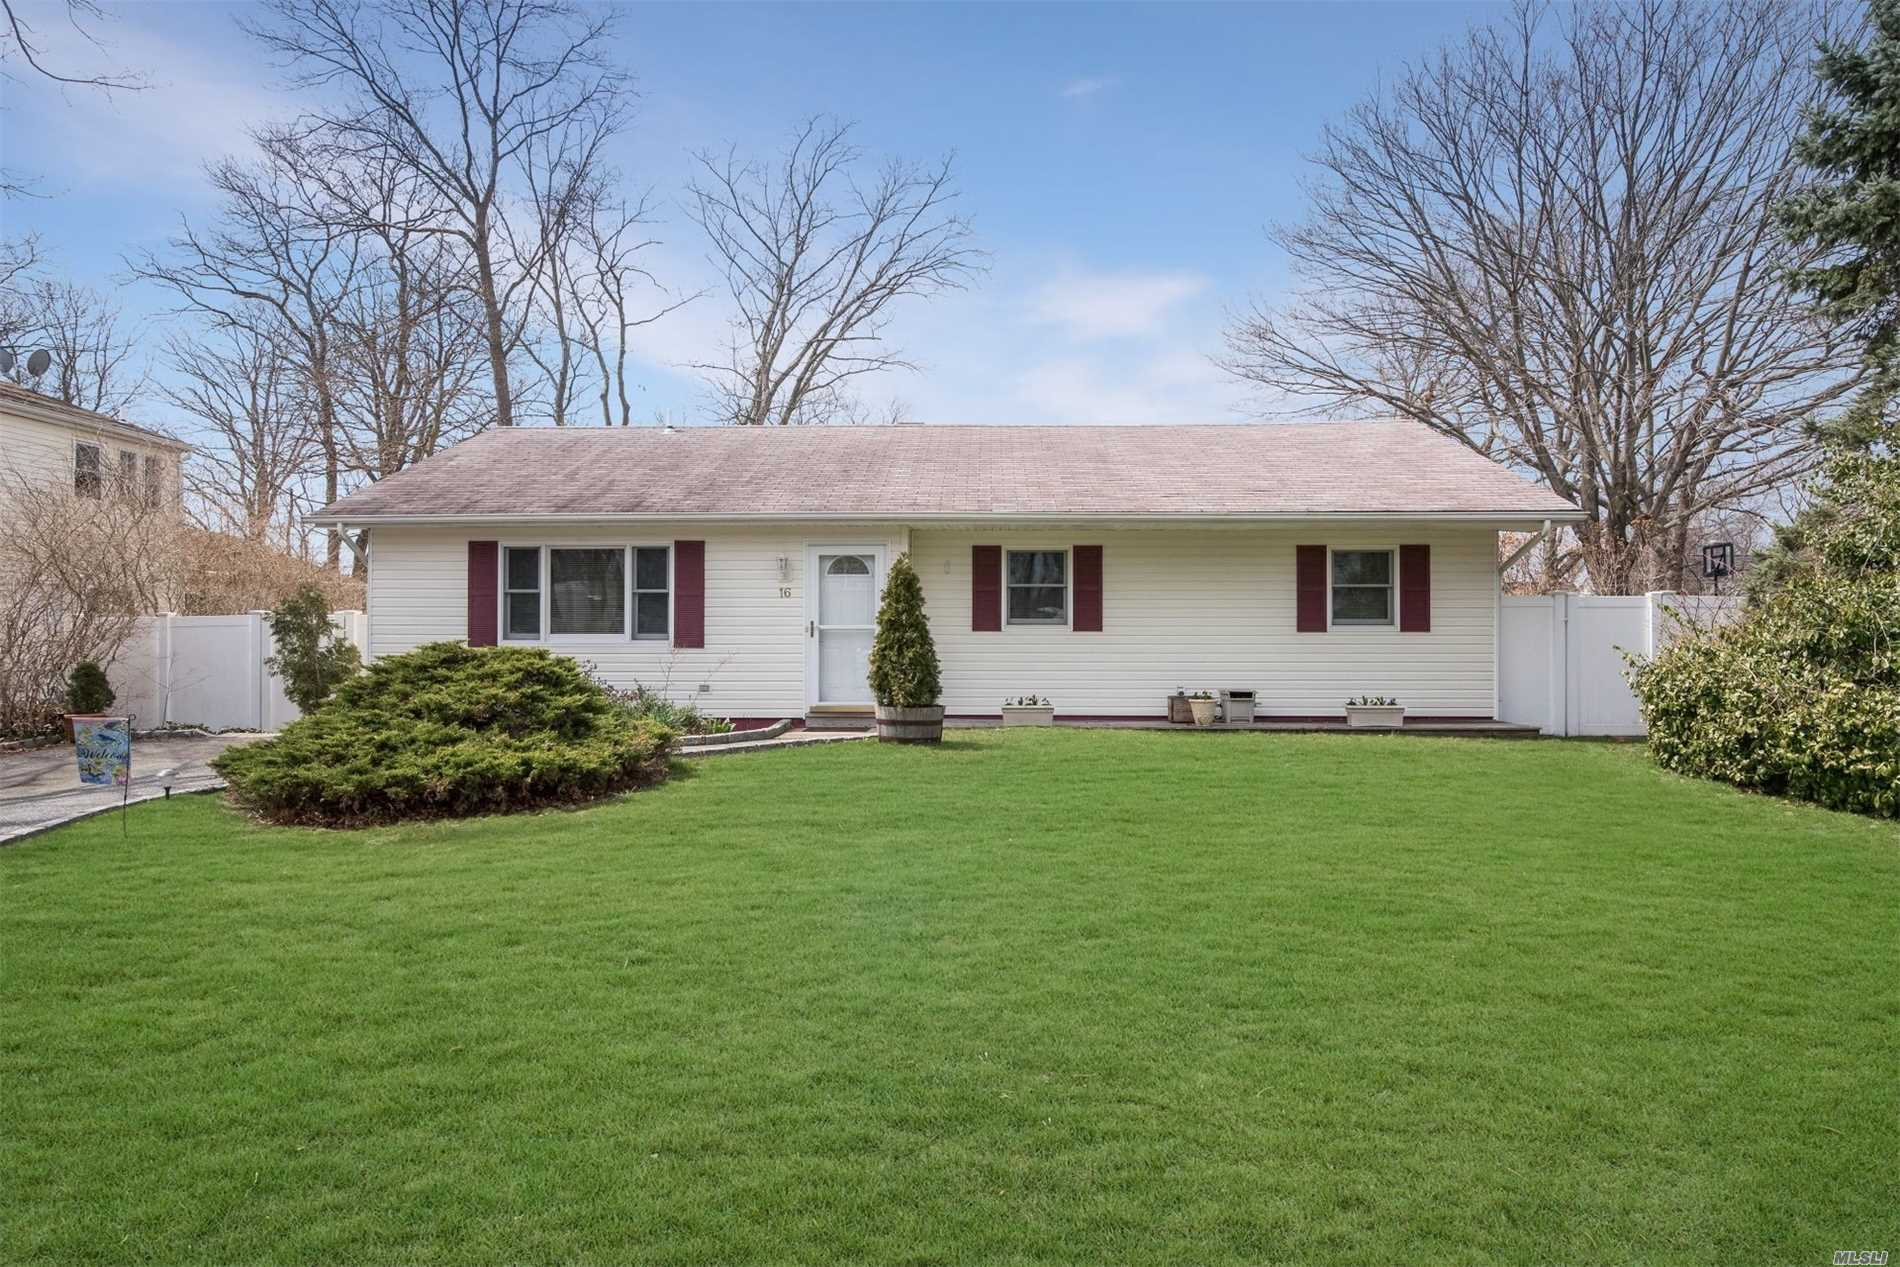 16 Sims St - Patchogue, New York